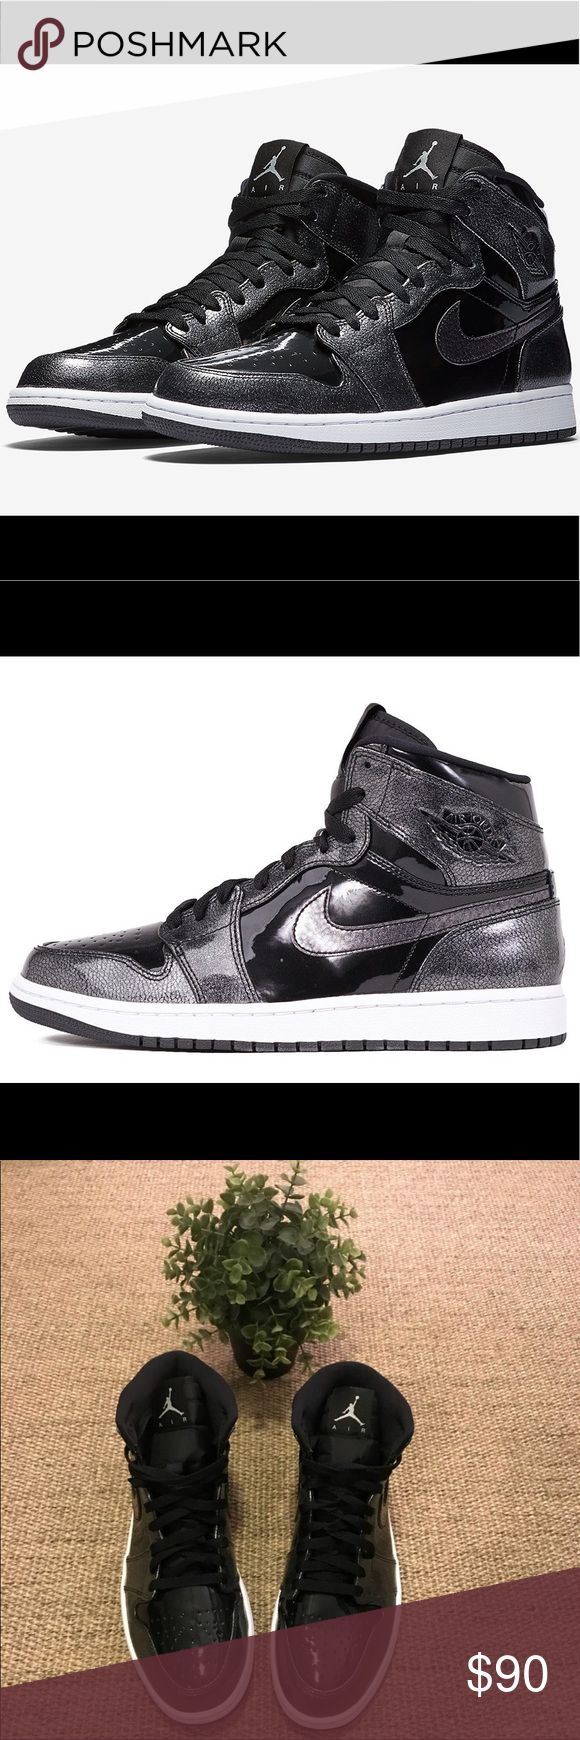 Air Jordan 1 Retro Black High Tops BRAND NEW!!! AMAZING black high top Jordans with white trim. Comes with box! Nike Shoes Sneakers